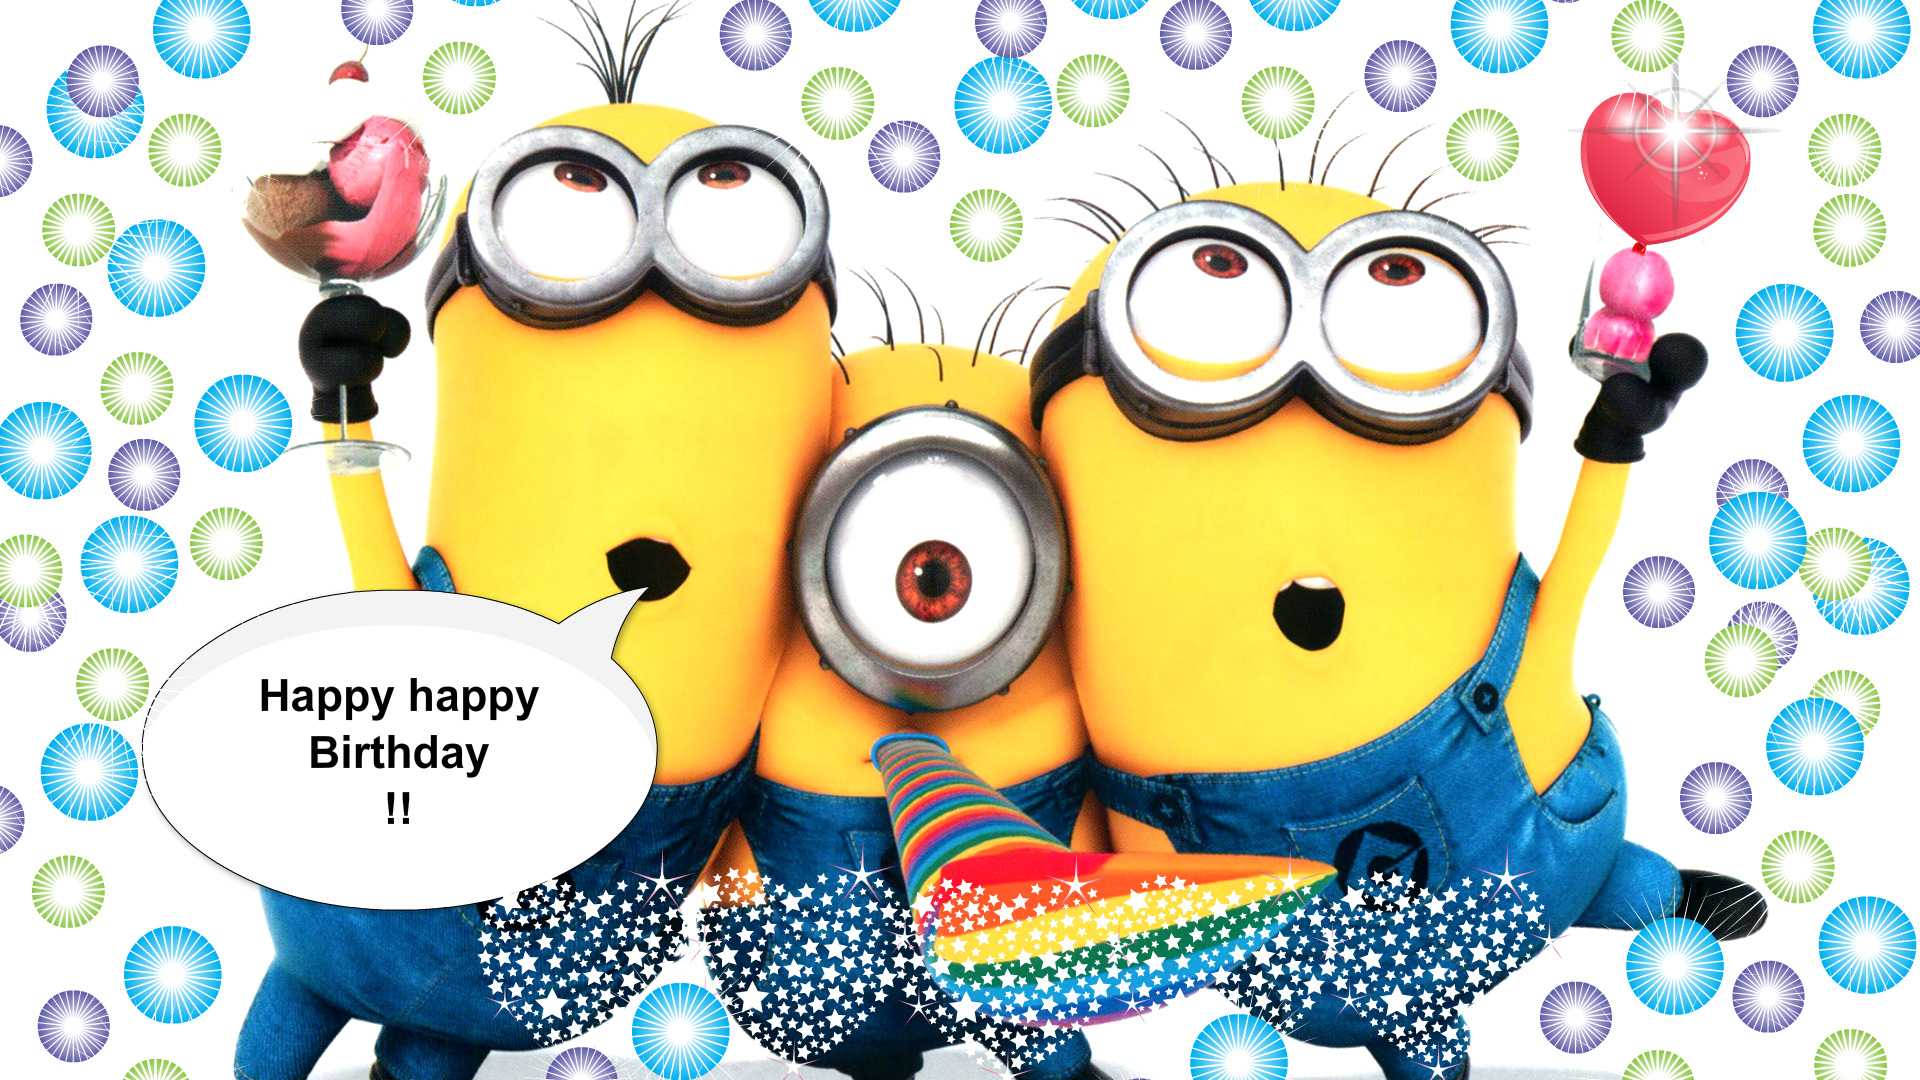 Telugu Funny Quotes Wallpapers Download Happy Birthday Minions Wallpaper Gallery